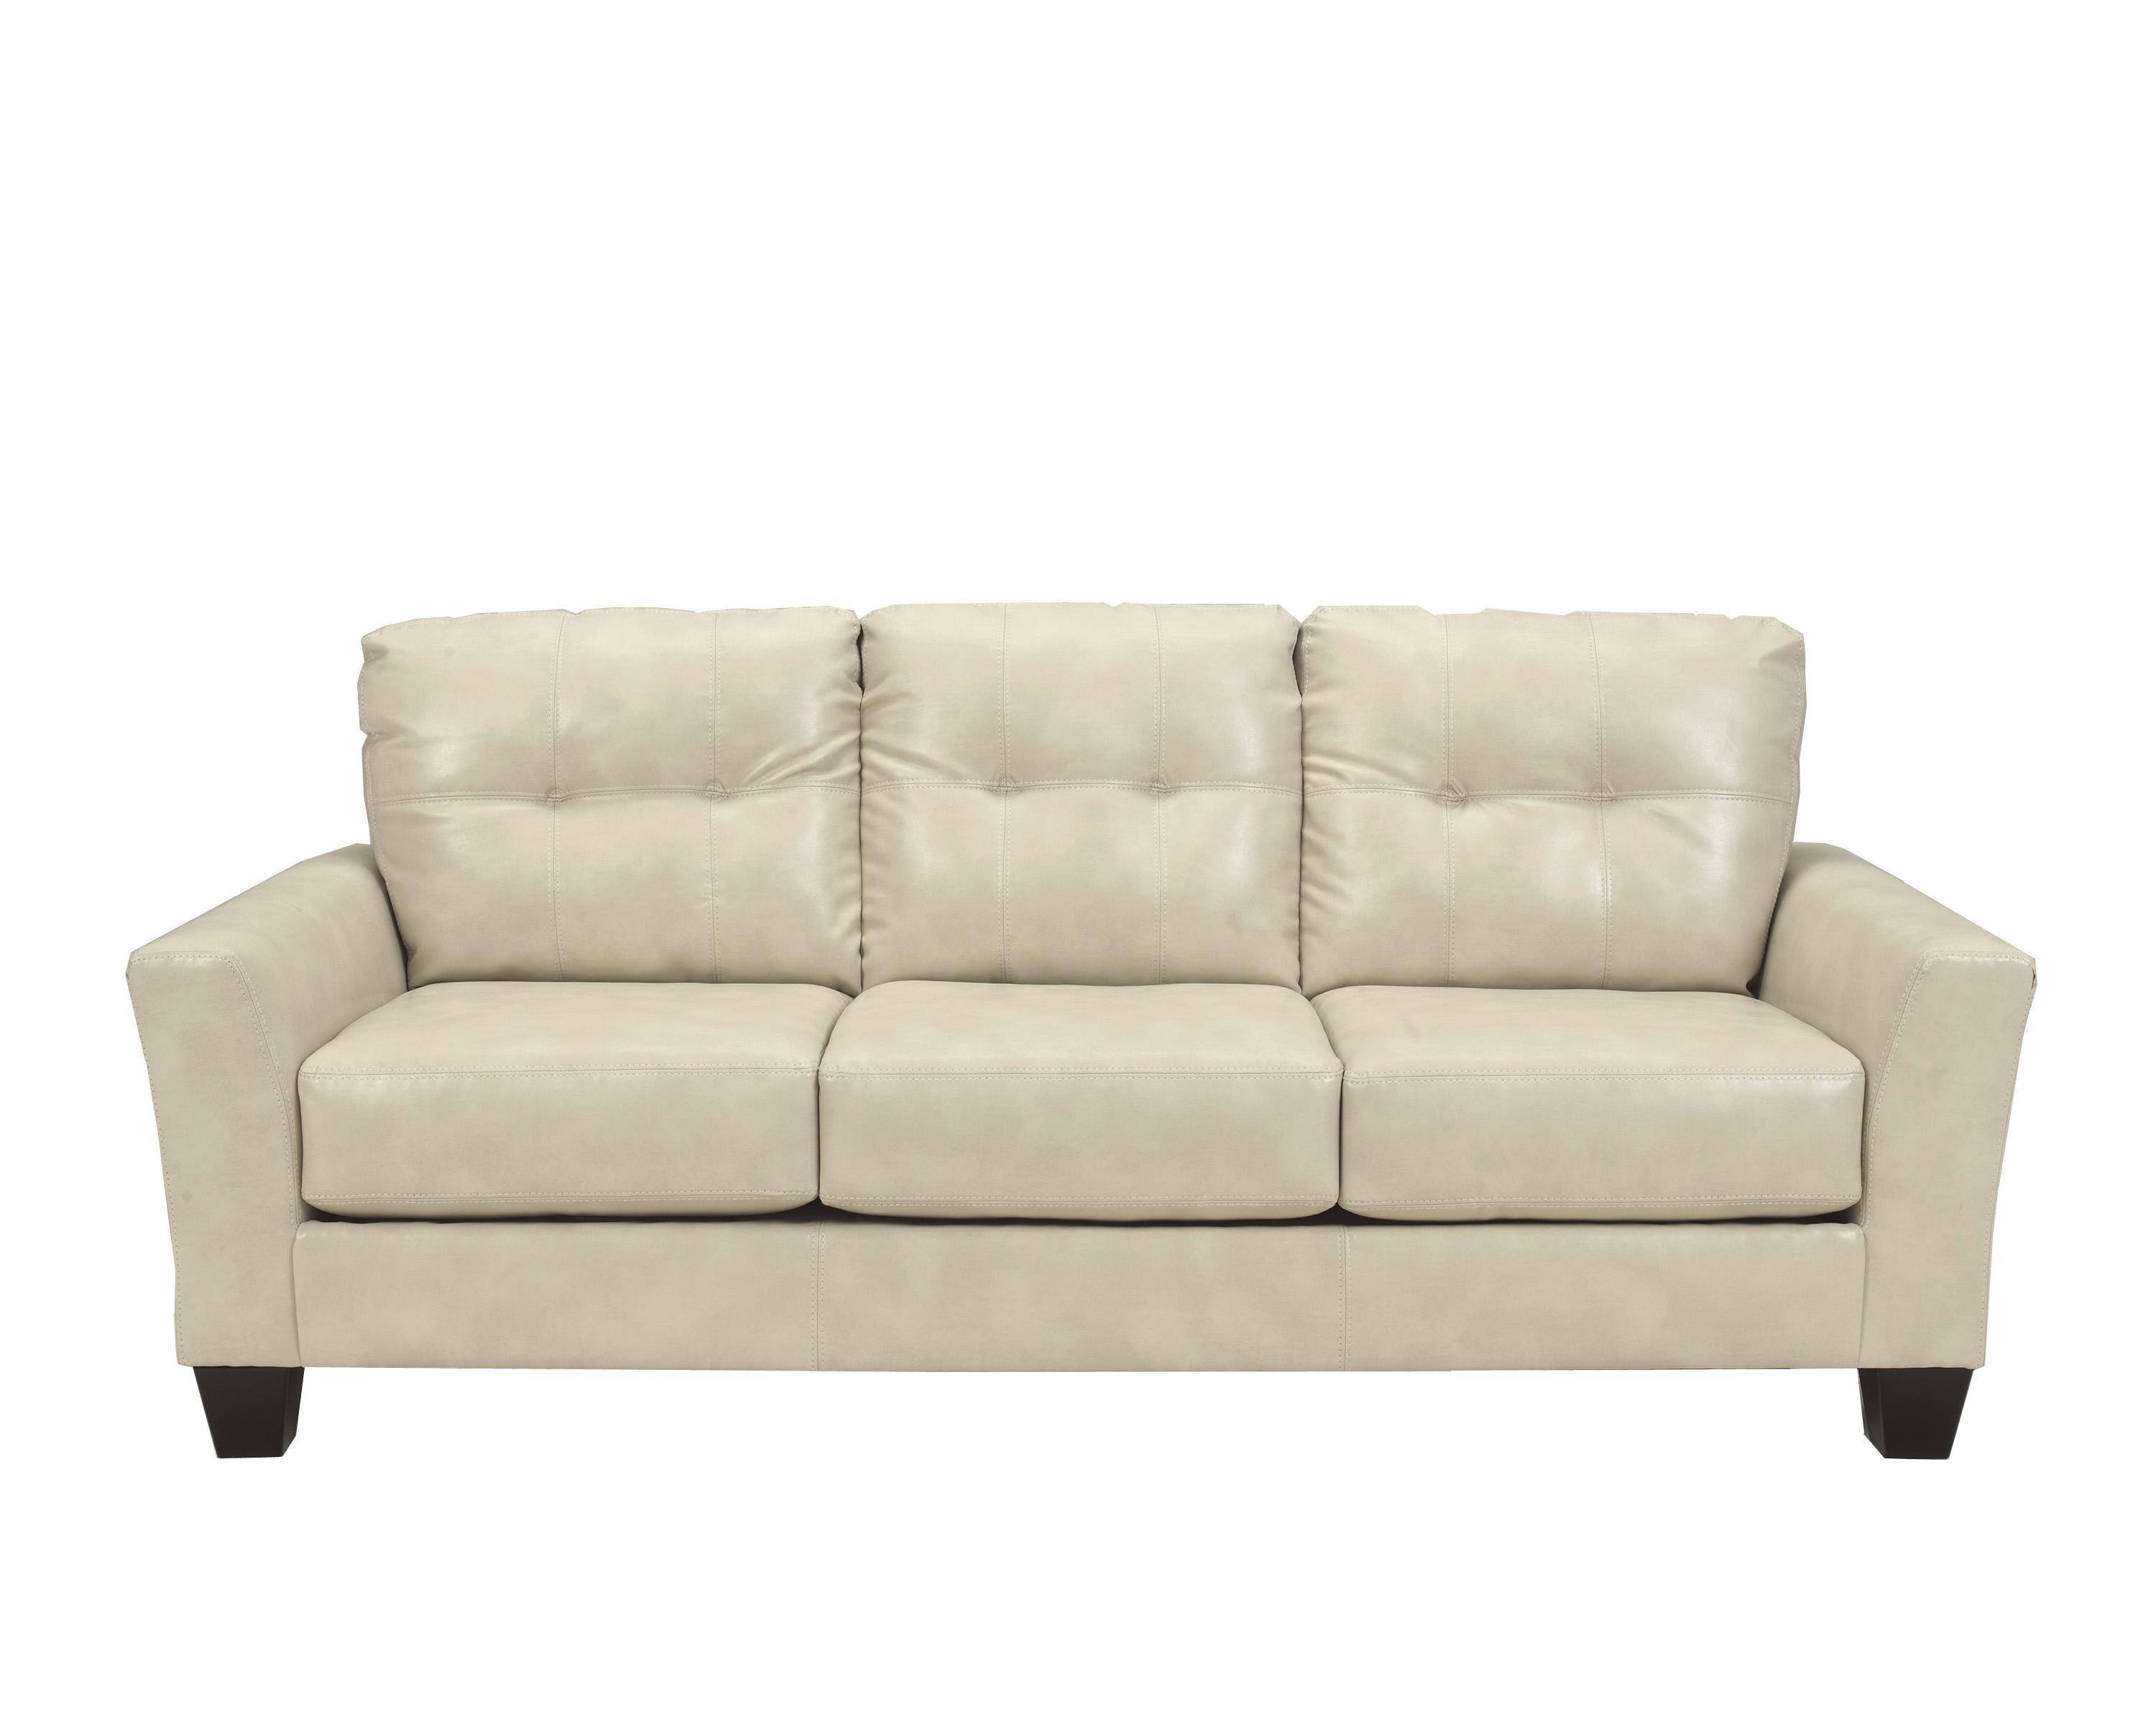 Benchcraft Paulie DuraBlend® - Taupe Sofa - Item Number: 2700038